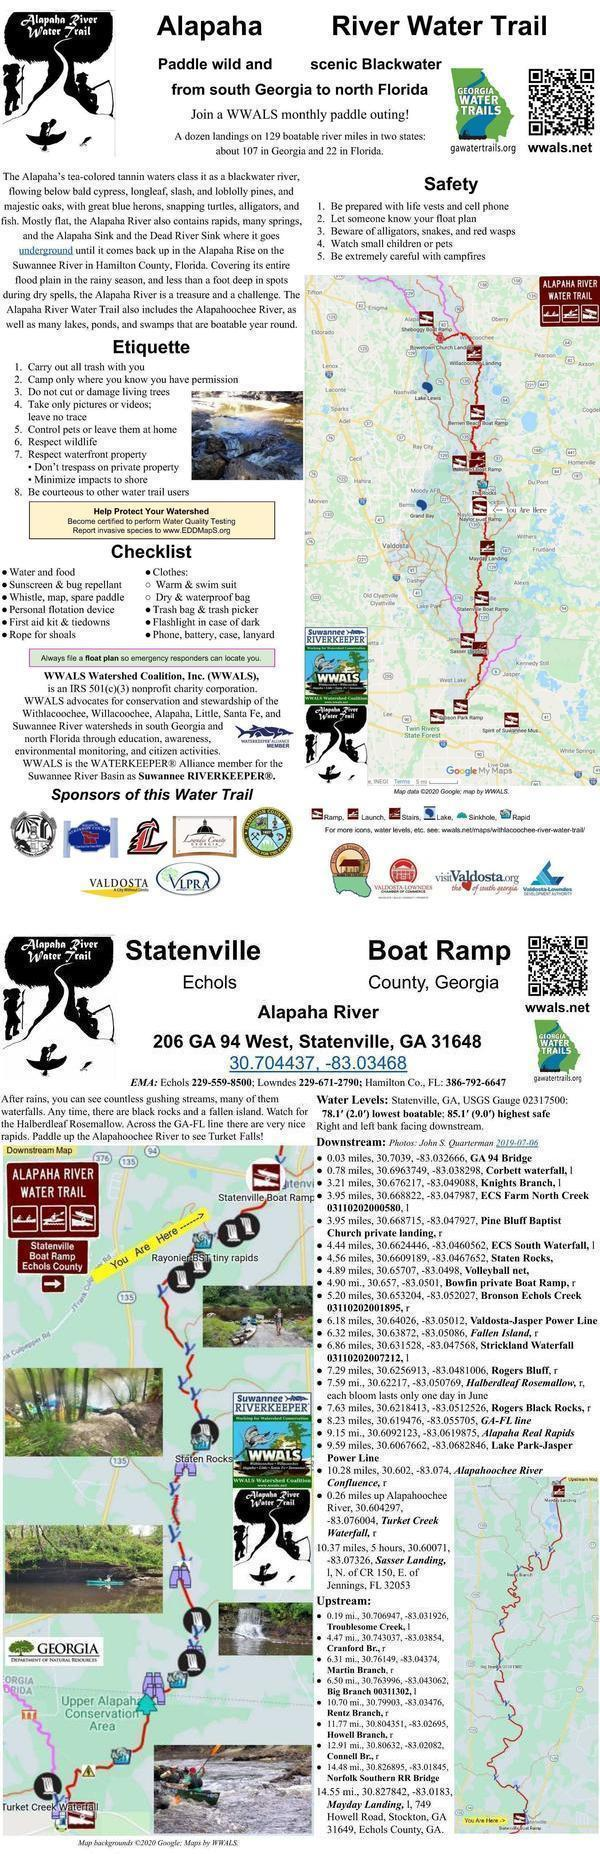 [Alapaha River signpost: Statenville Boat Ramp]